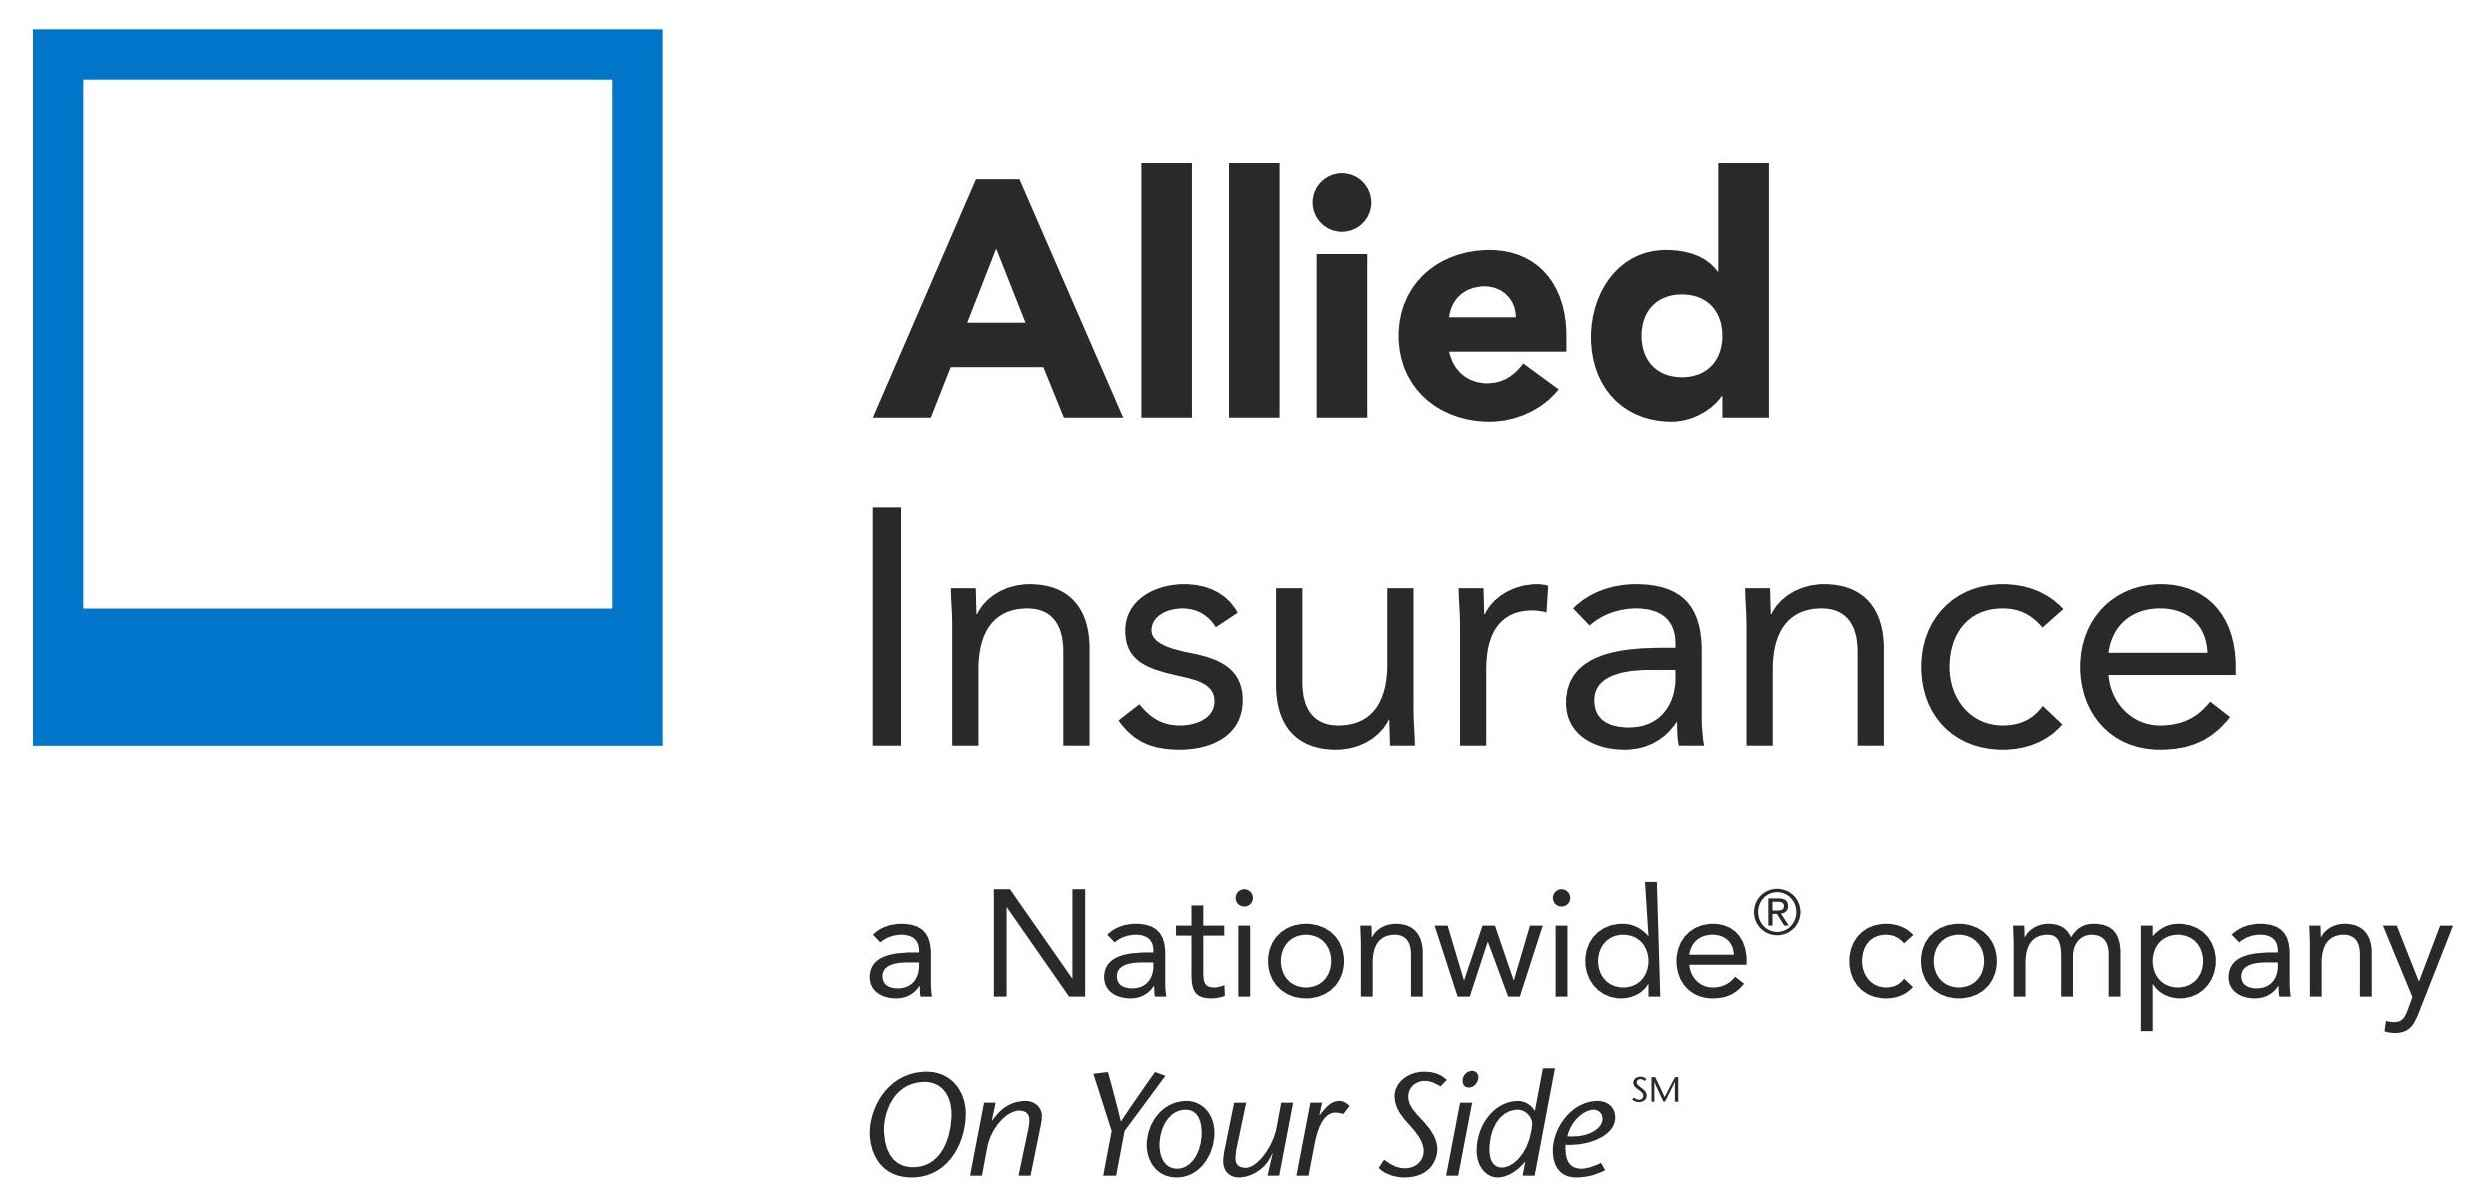 Allied Insurance Logo png